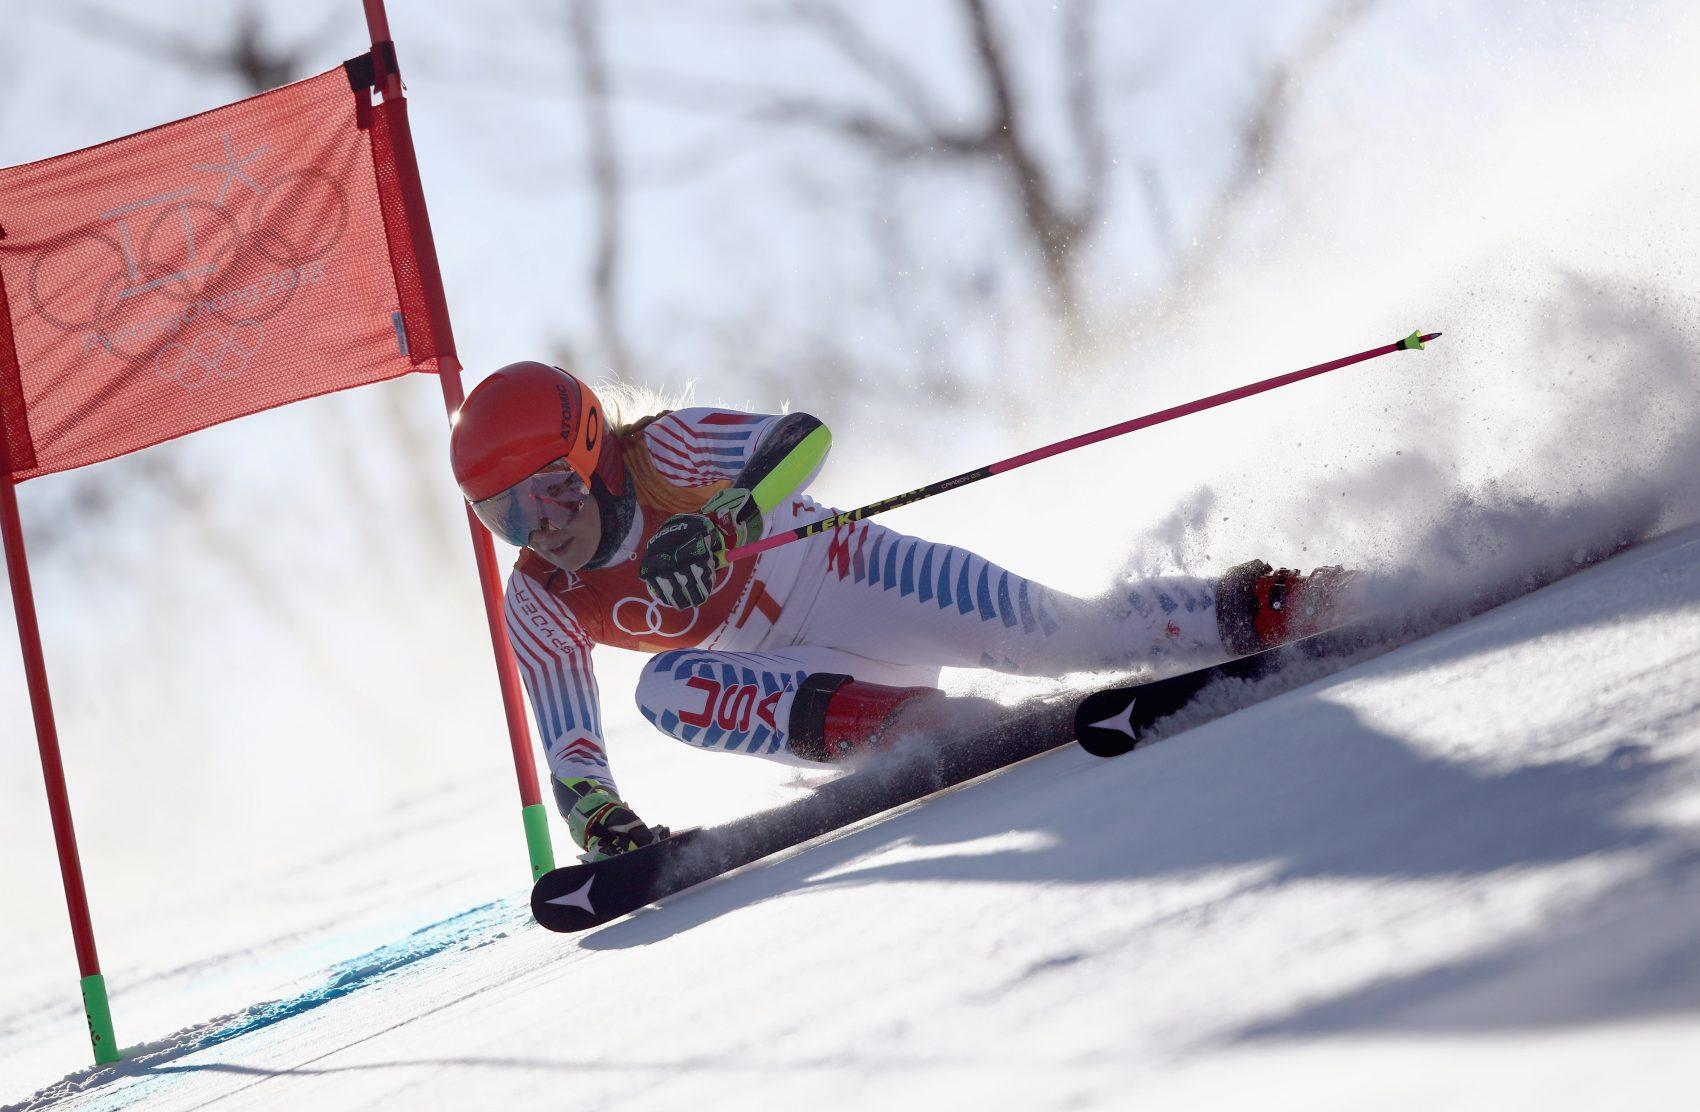 Shiffrin Faces 'tough' Olympic Decisions - Coach